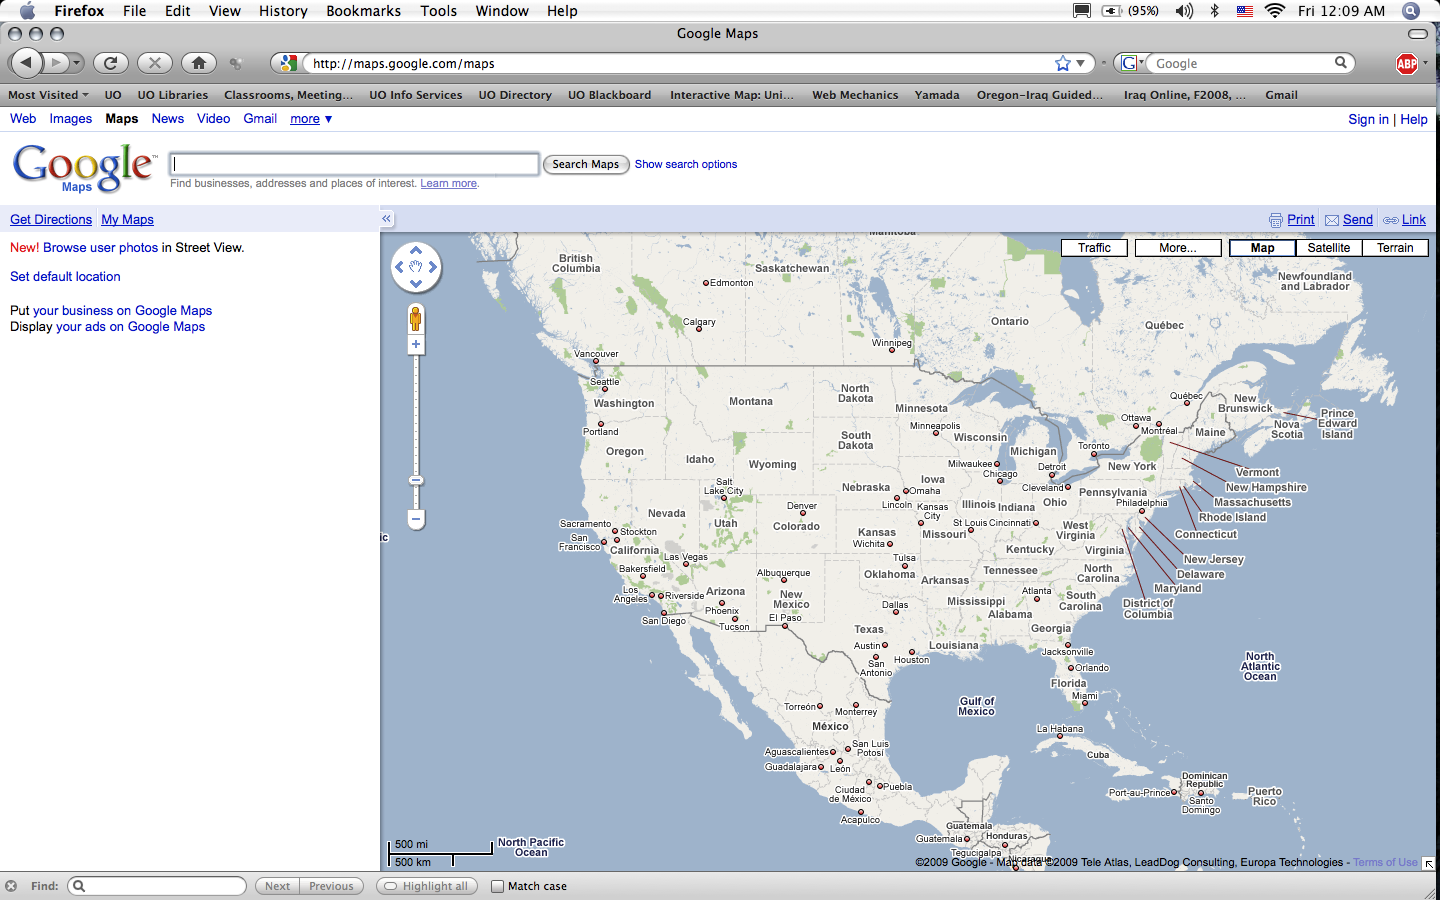 tesl ej  using google my maps for classroom projects mfig m maps googlecomm mapsgooglecomm. mapsgooglecomm maps classic